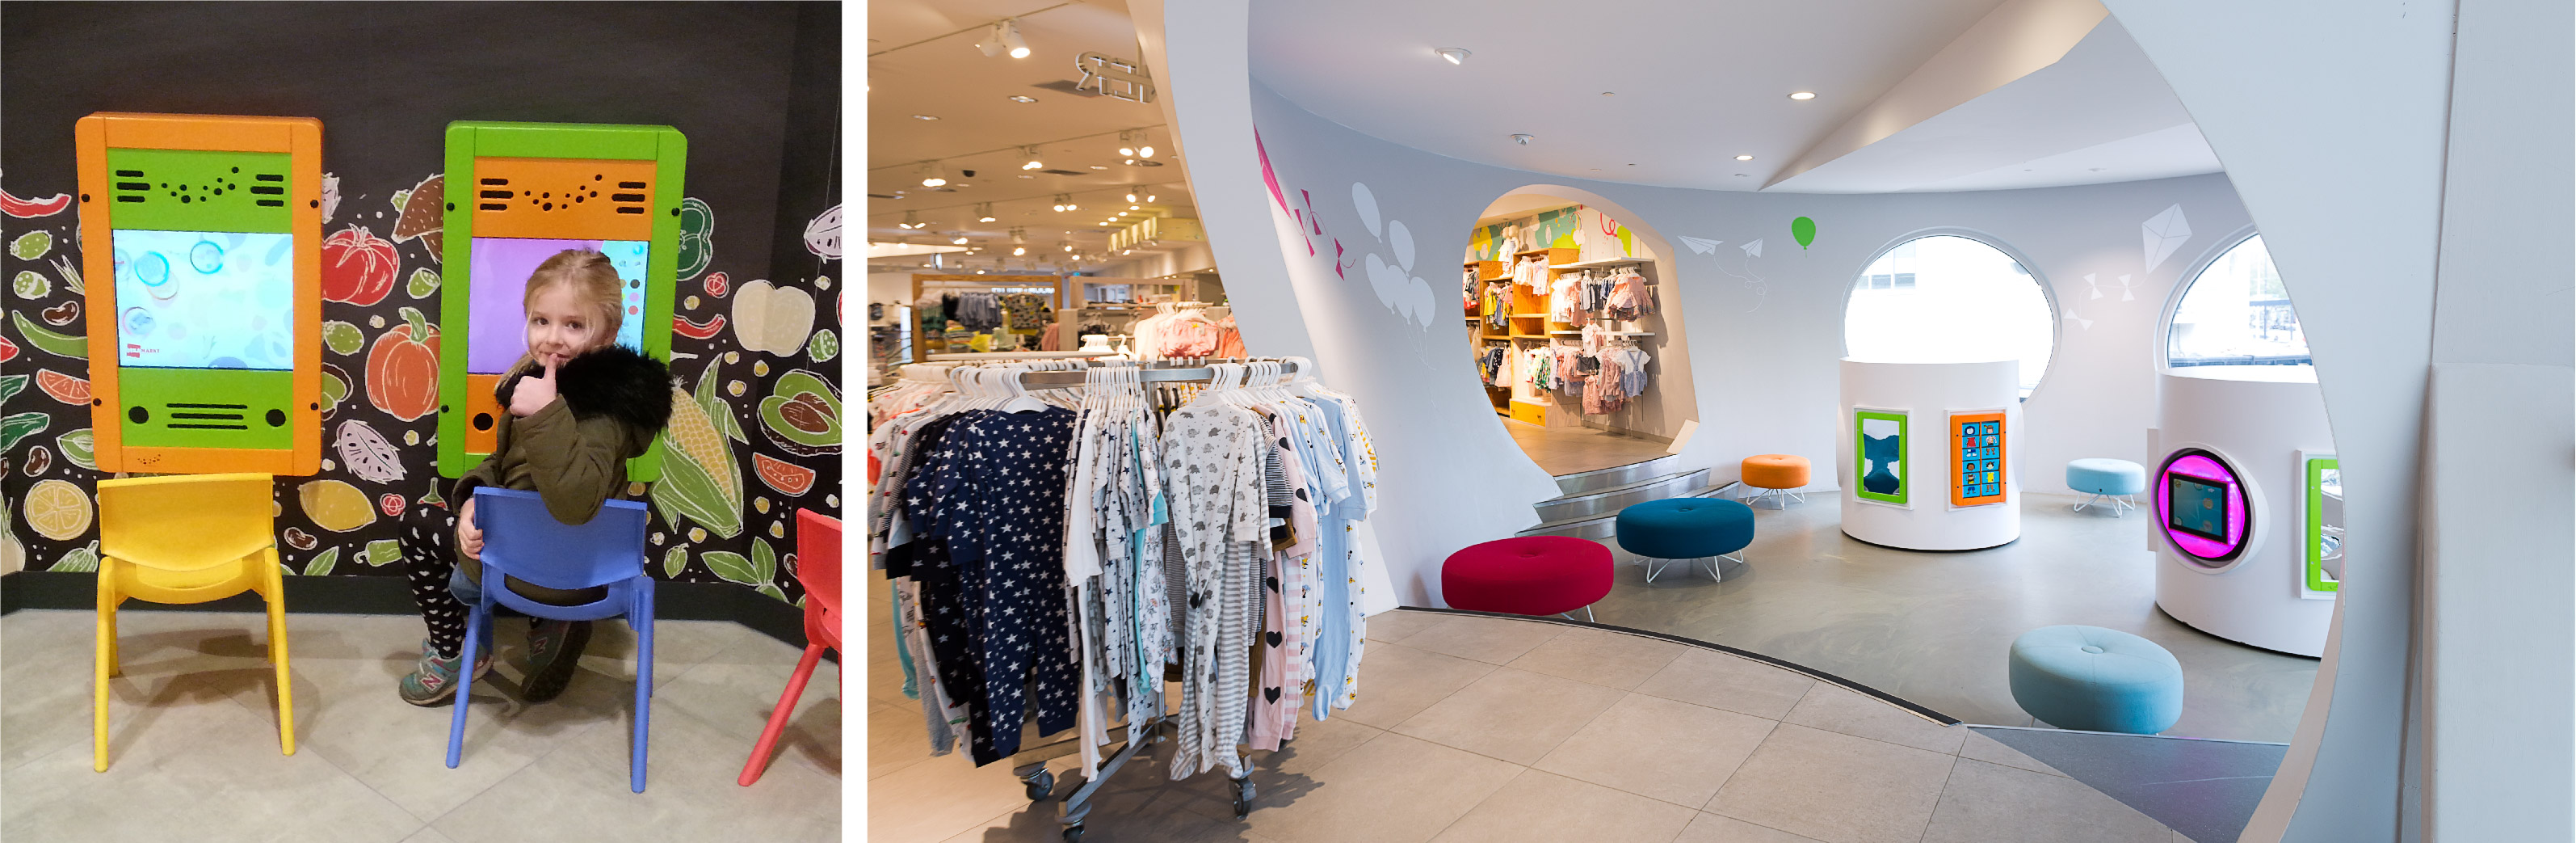 this image shows a kids corner in a clothing store